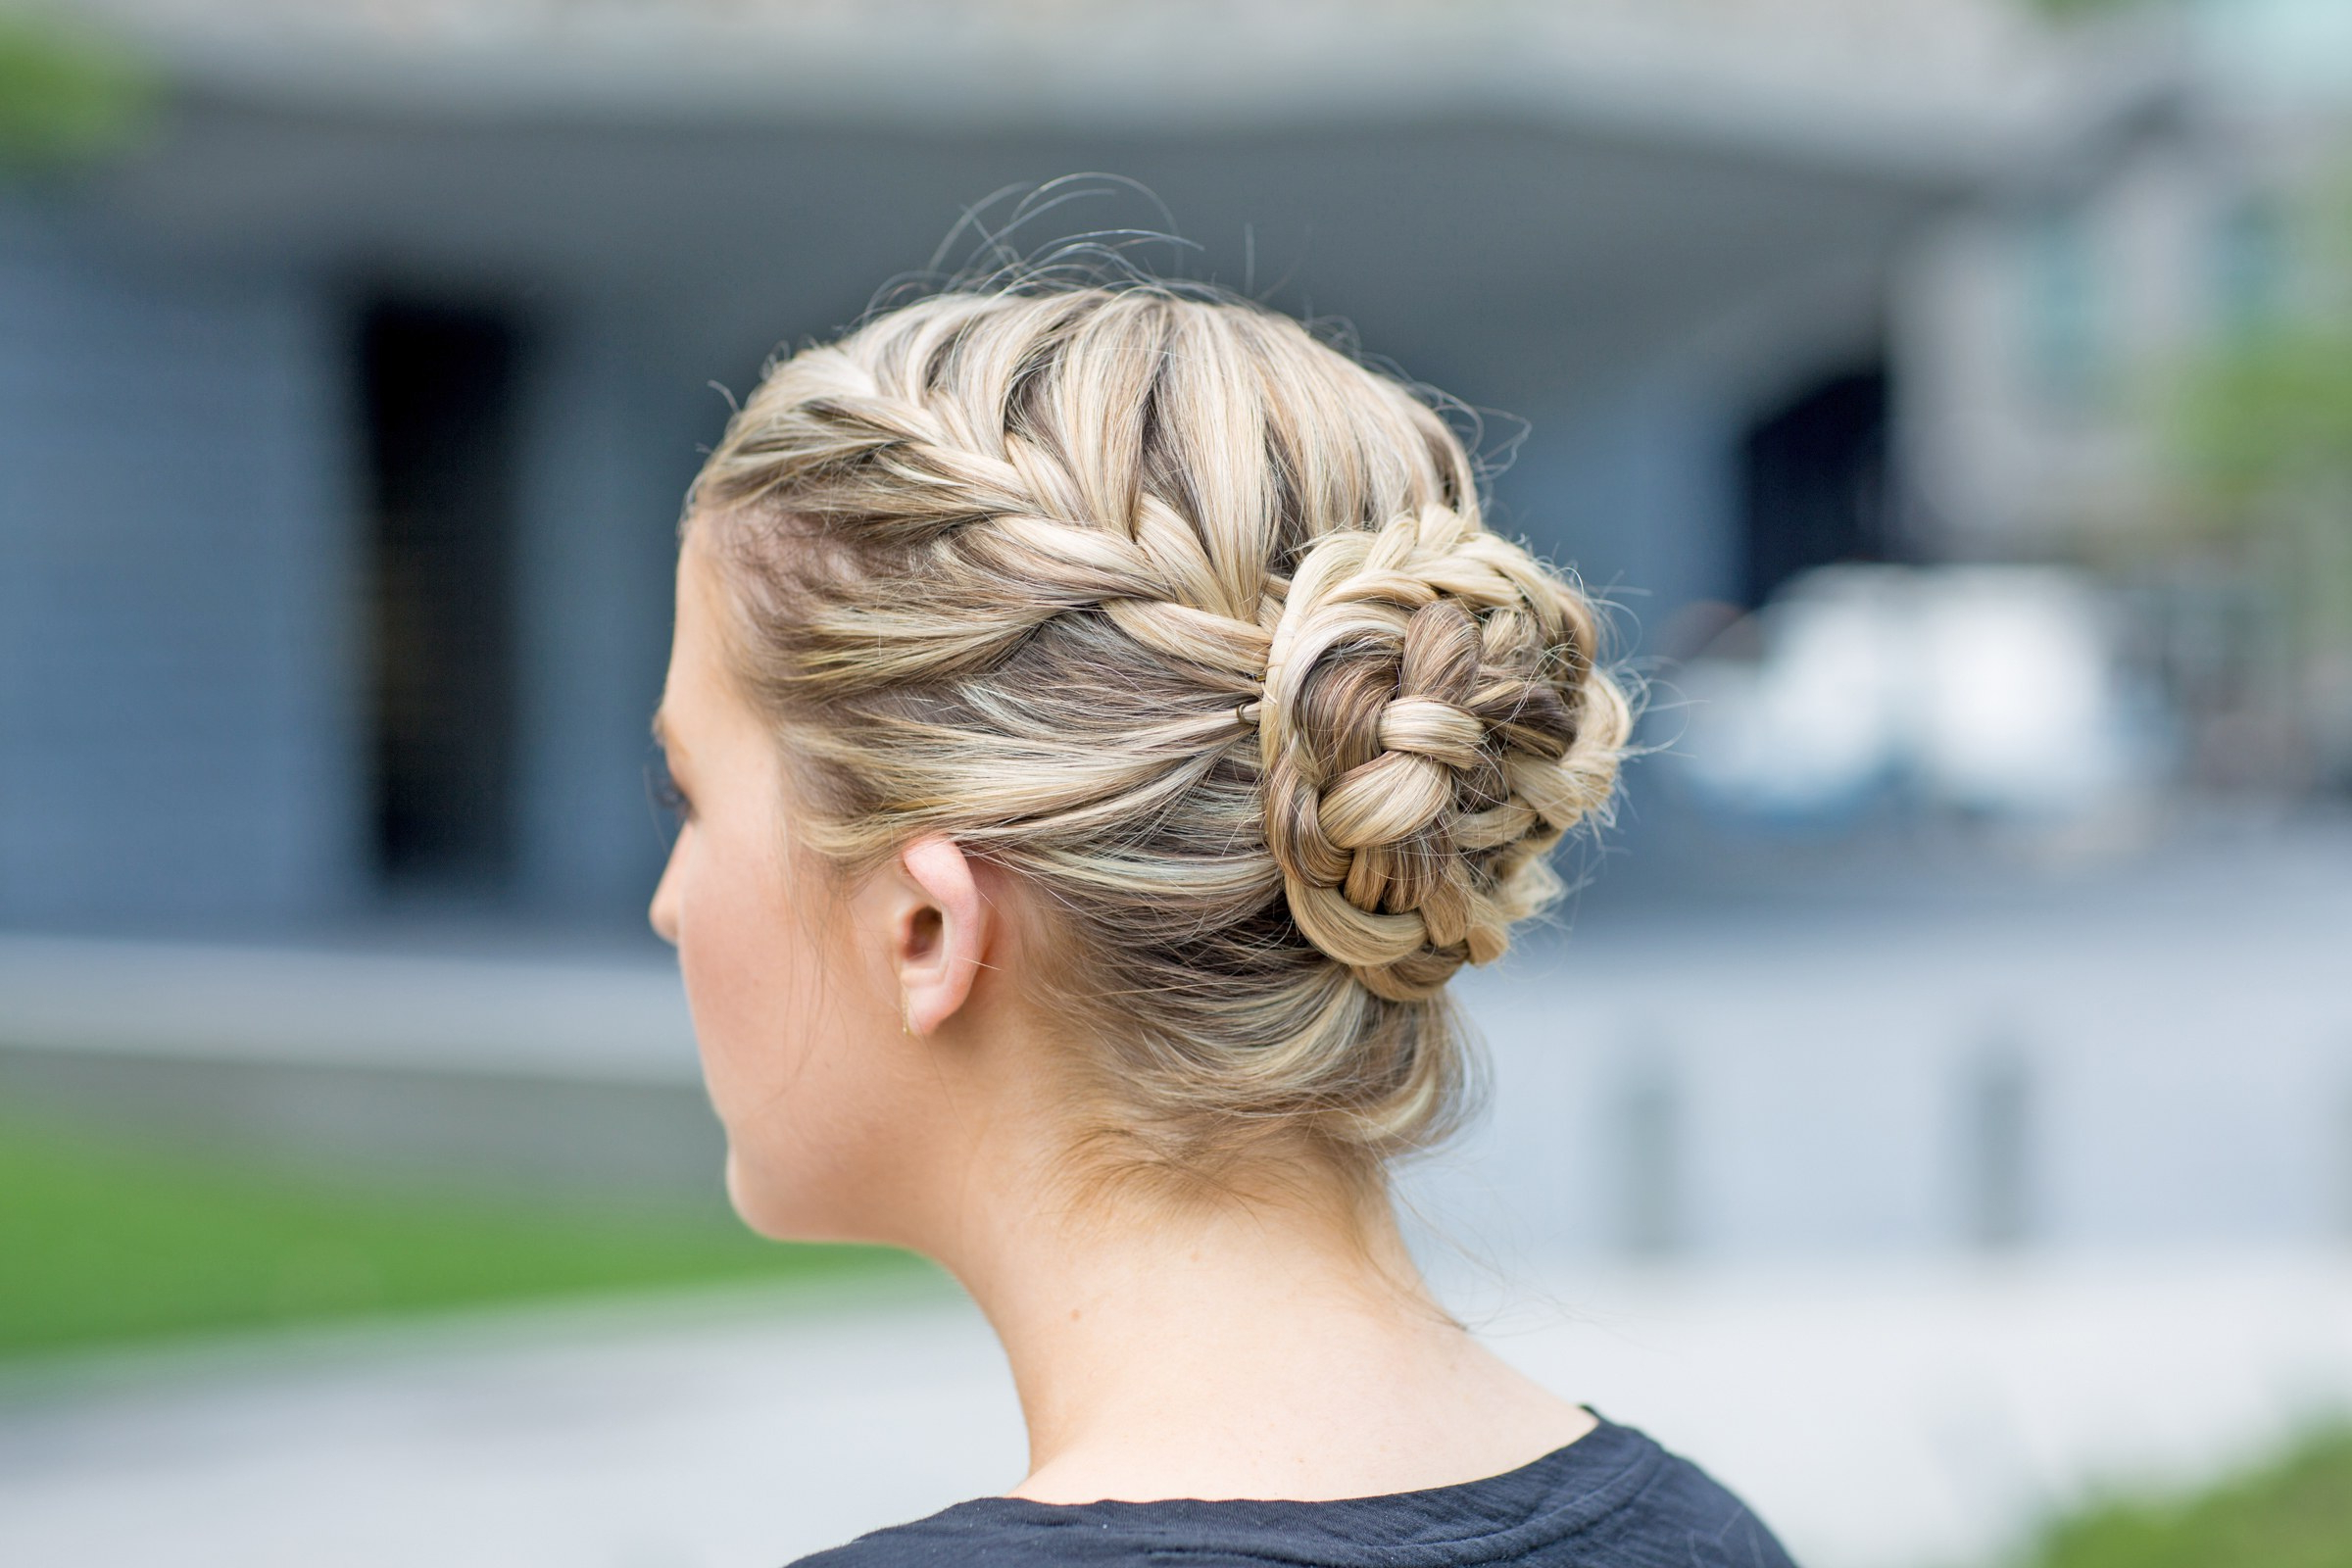 Most Popular Extra Thick Braided Bun Hairstyles In The Best Braided Hairstyles For Fine Hair And Curly Hair (View 17 of 20)